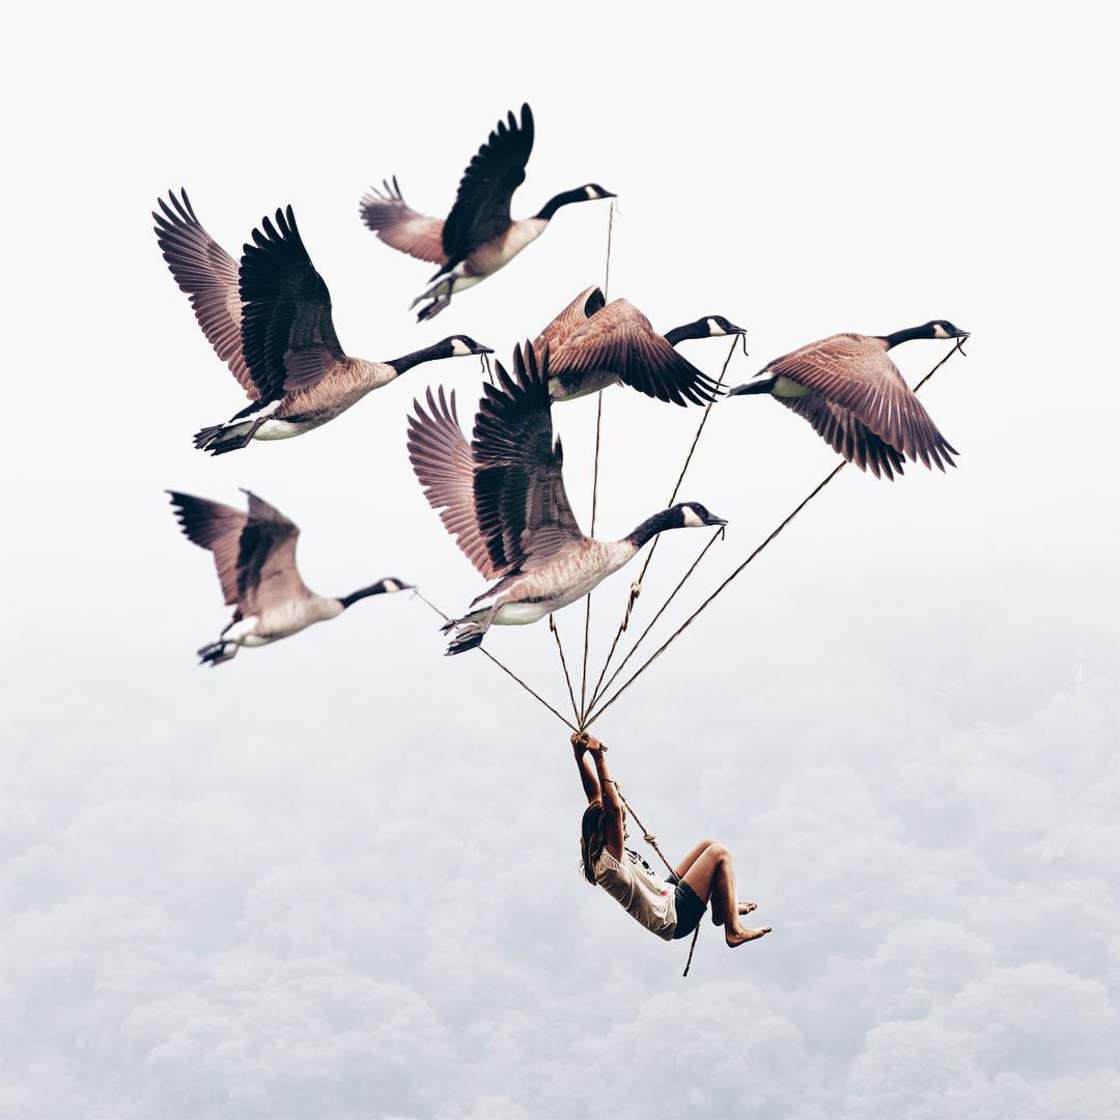 Marvelous and Poetic Photomontages by Luisa Azevedo